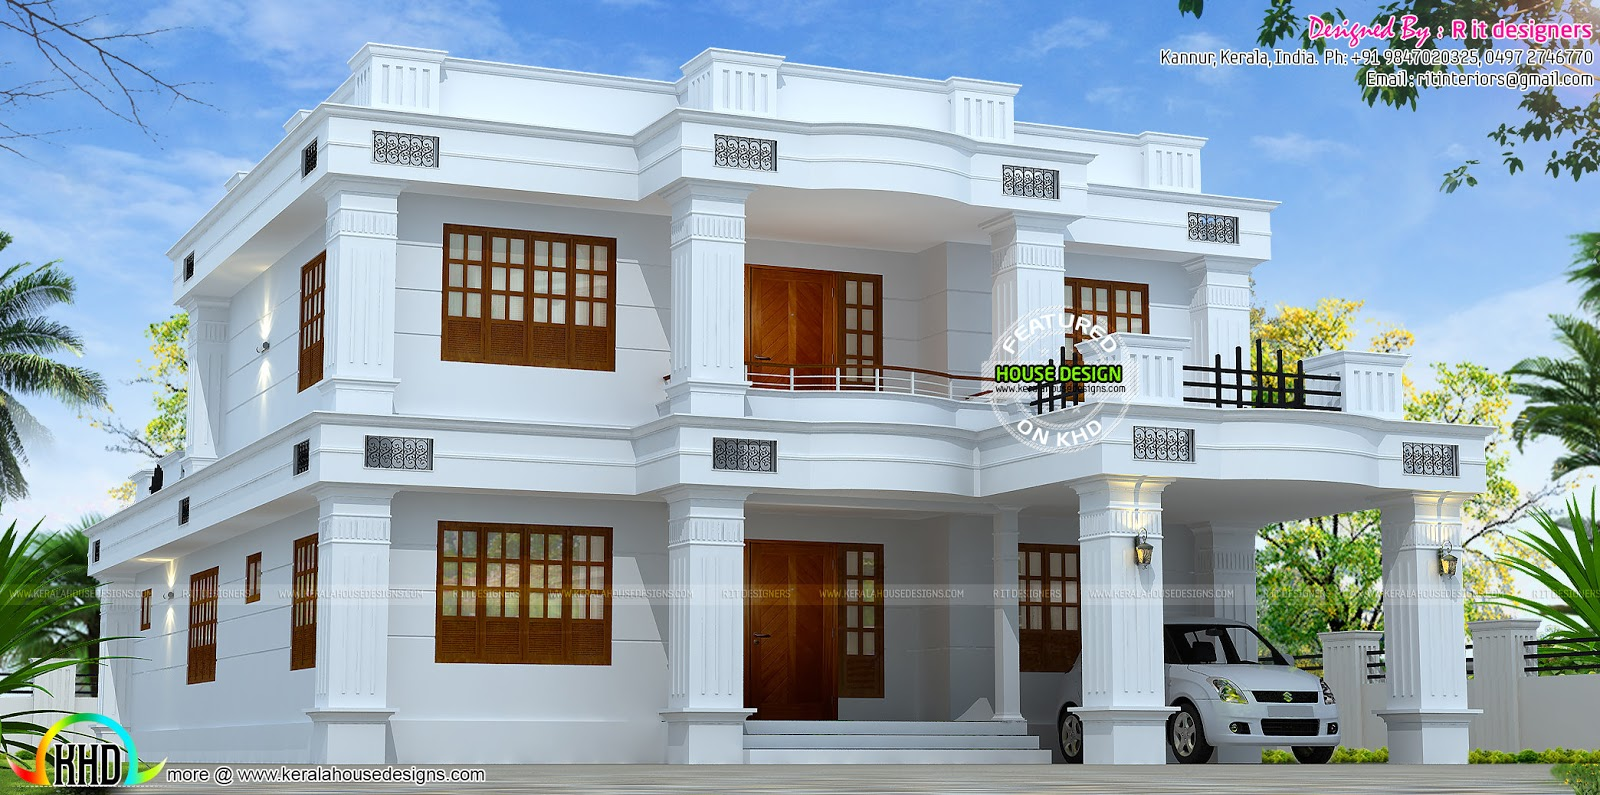 Kerala home design for House model design photos